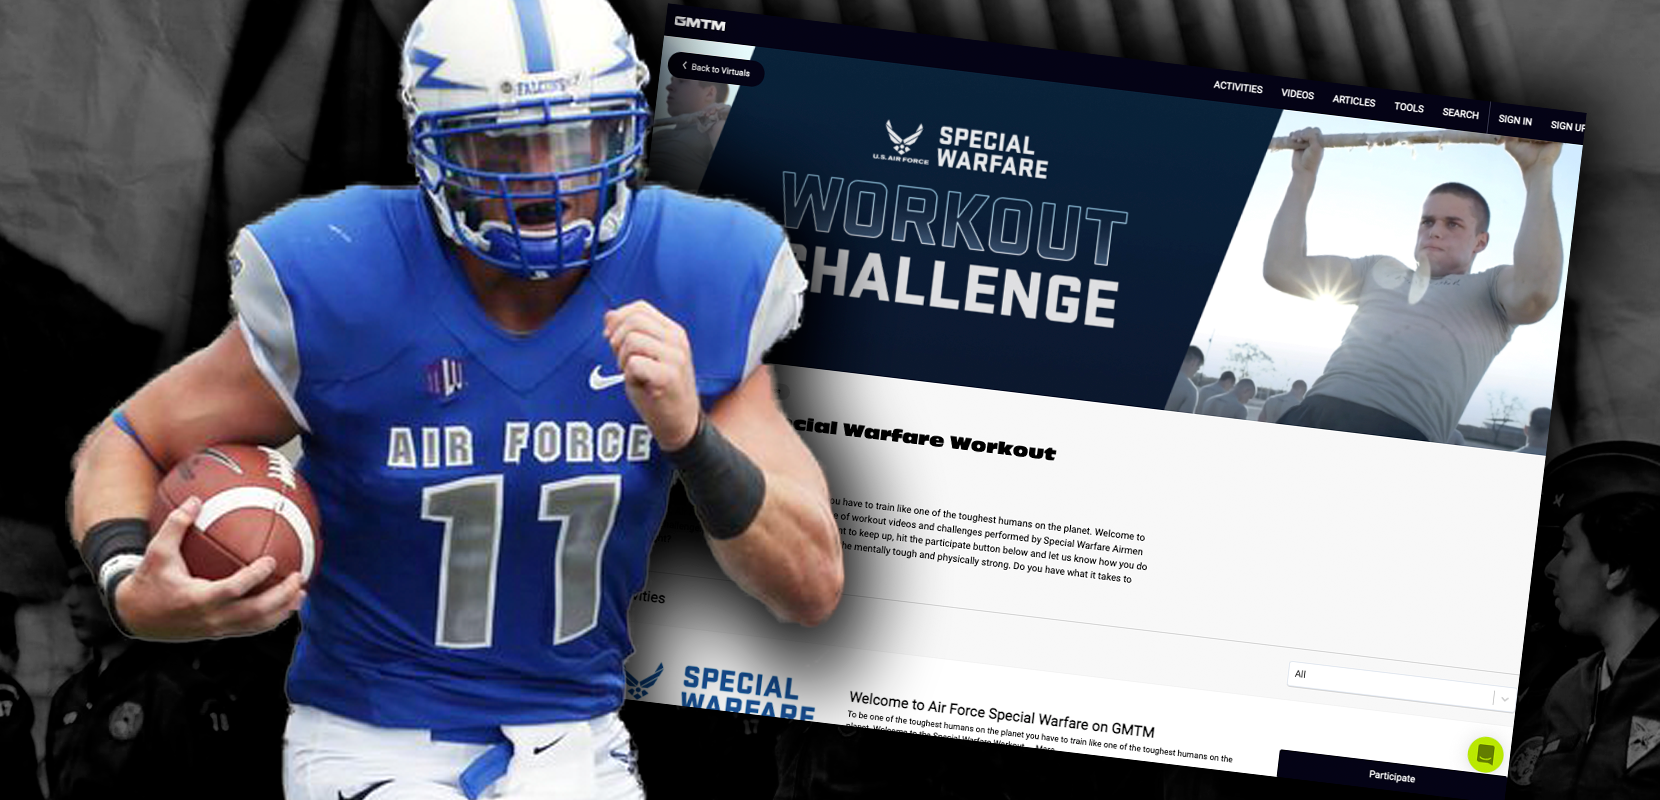 Former Air Force Captain, CFB Player on the Special Warfare Workout Challenge